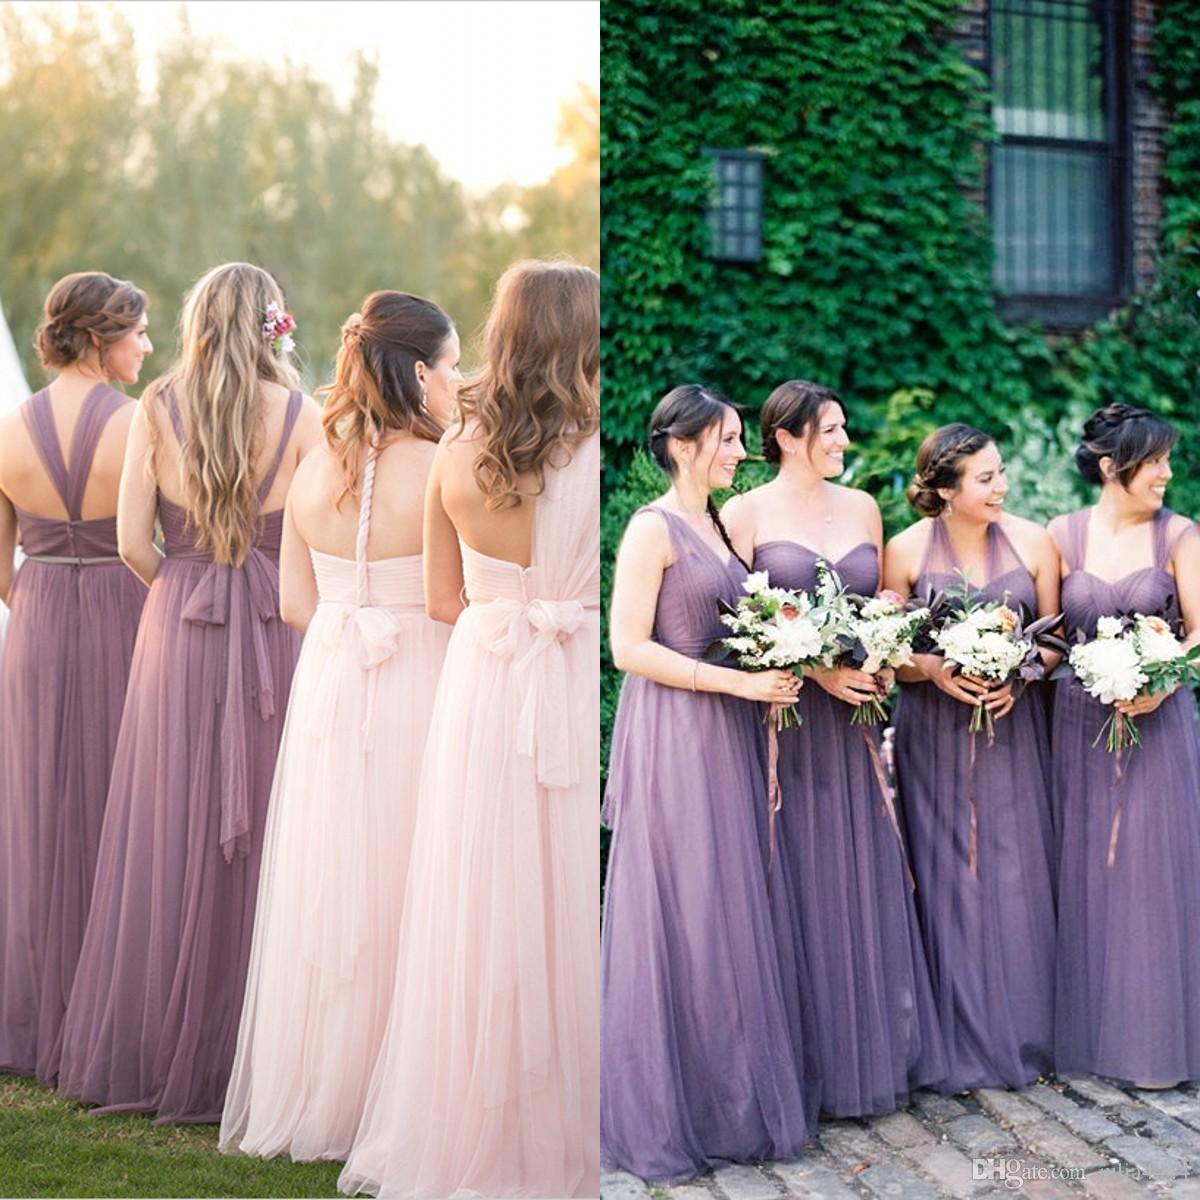 Convertible bridesmaid dresses 2017 maid of honor gowns formal convertible bridesmaid dresses 2017 maid of honor gowns formal bridesmaid group plus size navy blue cheap wedding party guest gown modest bridesmaid dresses ombrellifo Gallery